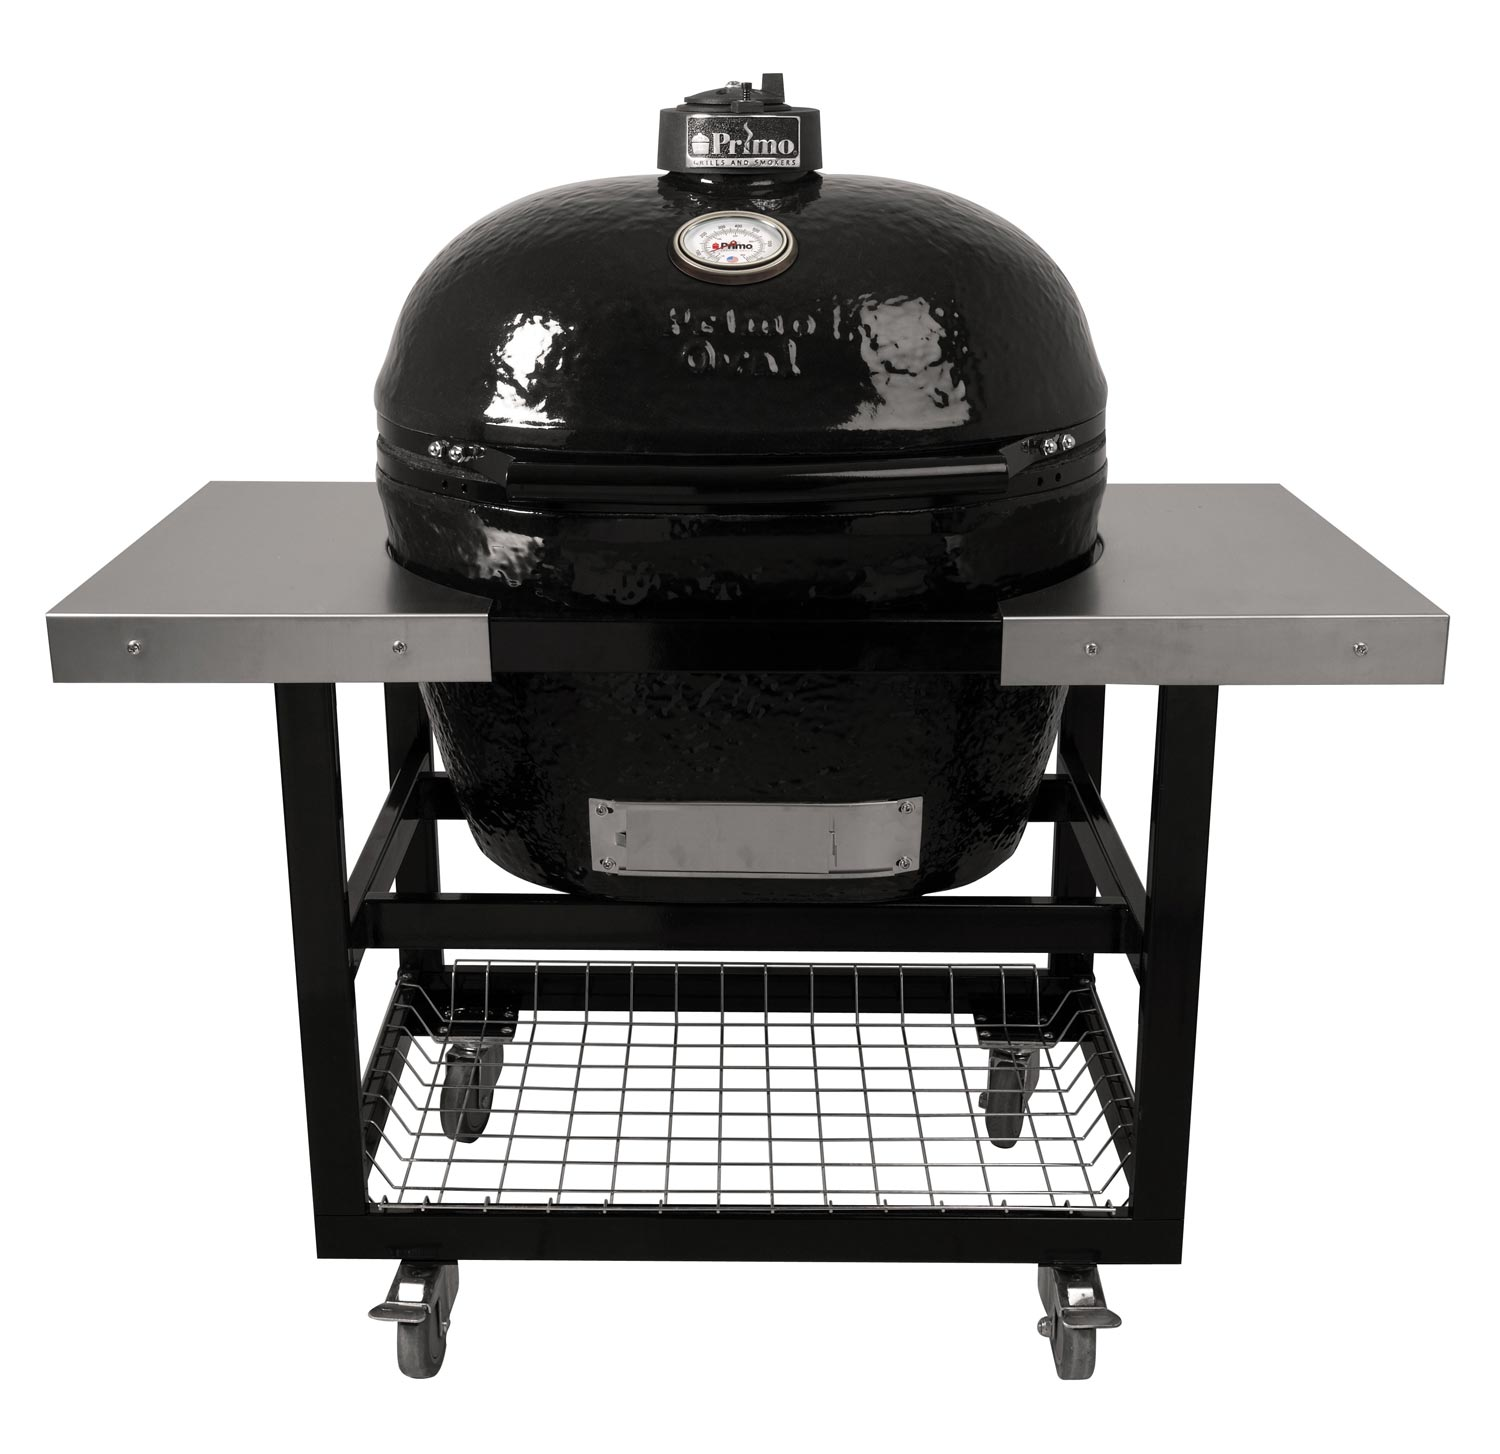 Primo Oval XL 400 Ceramic Smoker Grill On Cart with 2-Piece SS Side Tables by